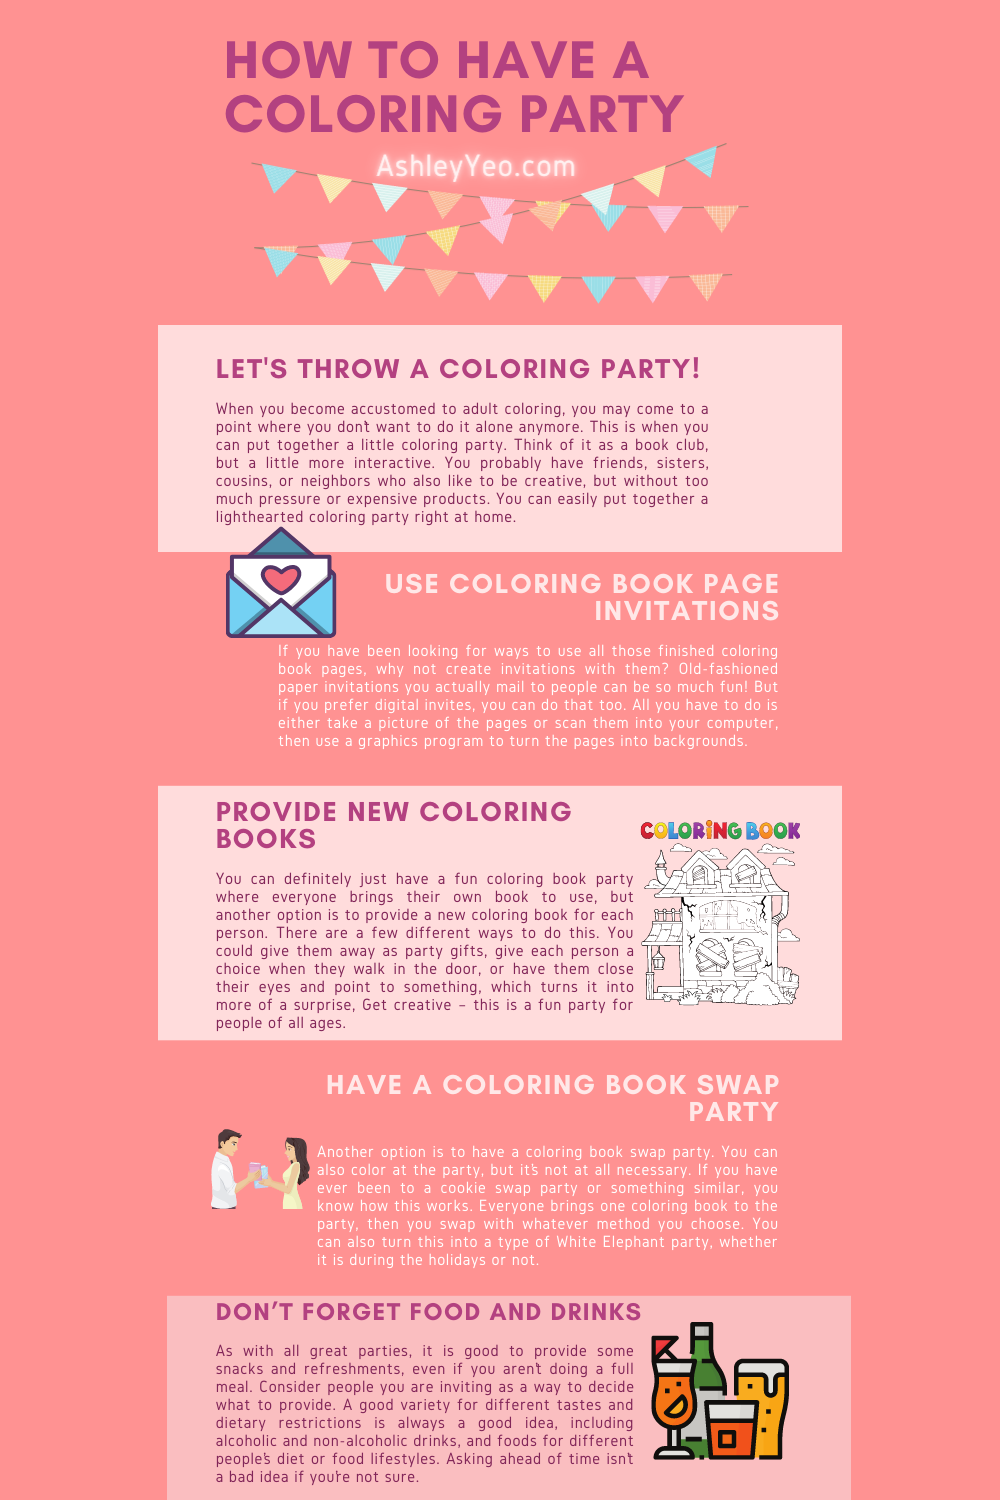 How to Have a Coloring Party Infographic